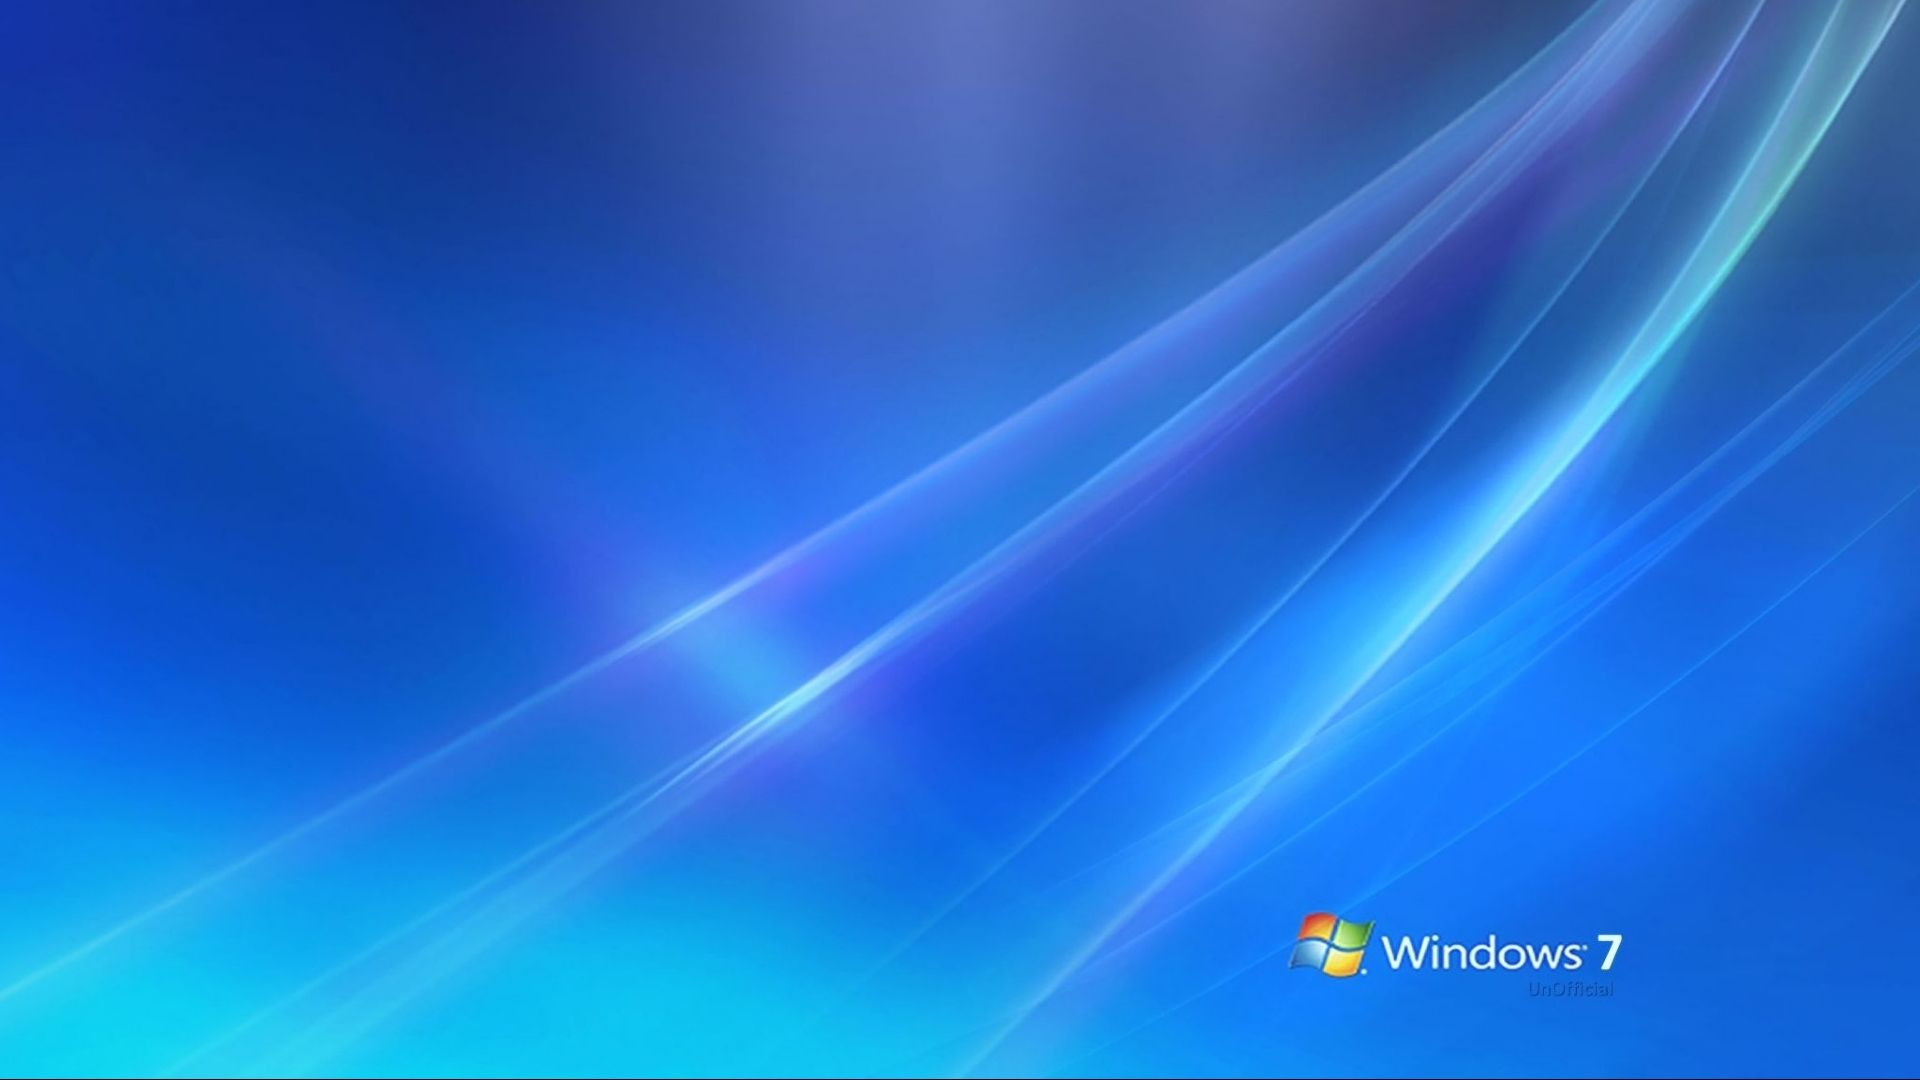 wallpaper ultimate windows computer screen wallpapers collection 1920x1080